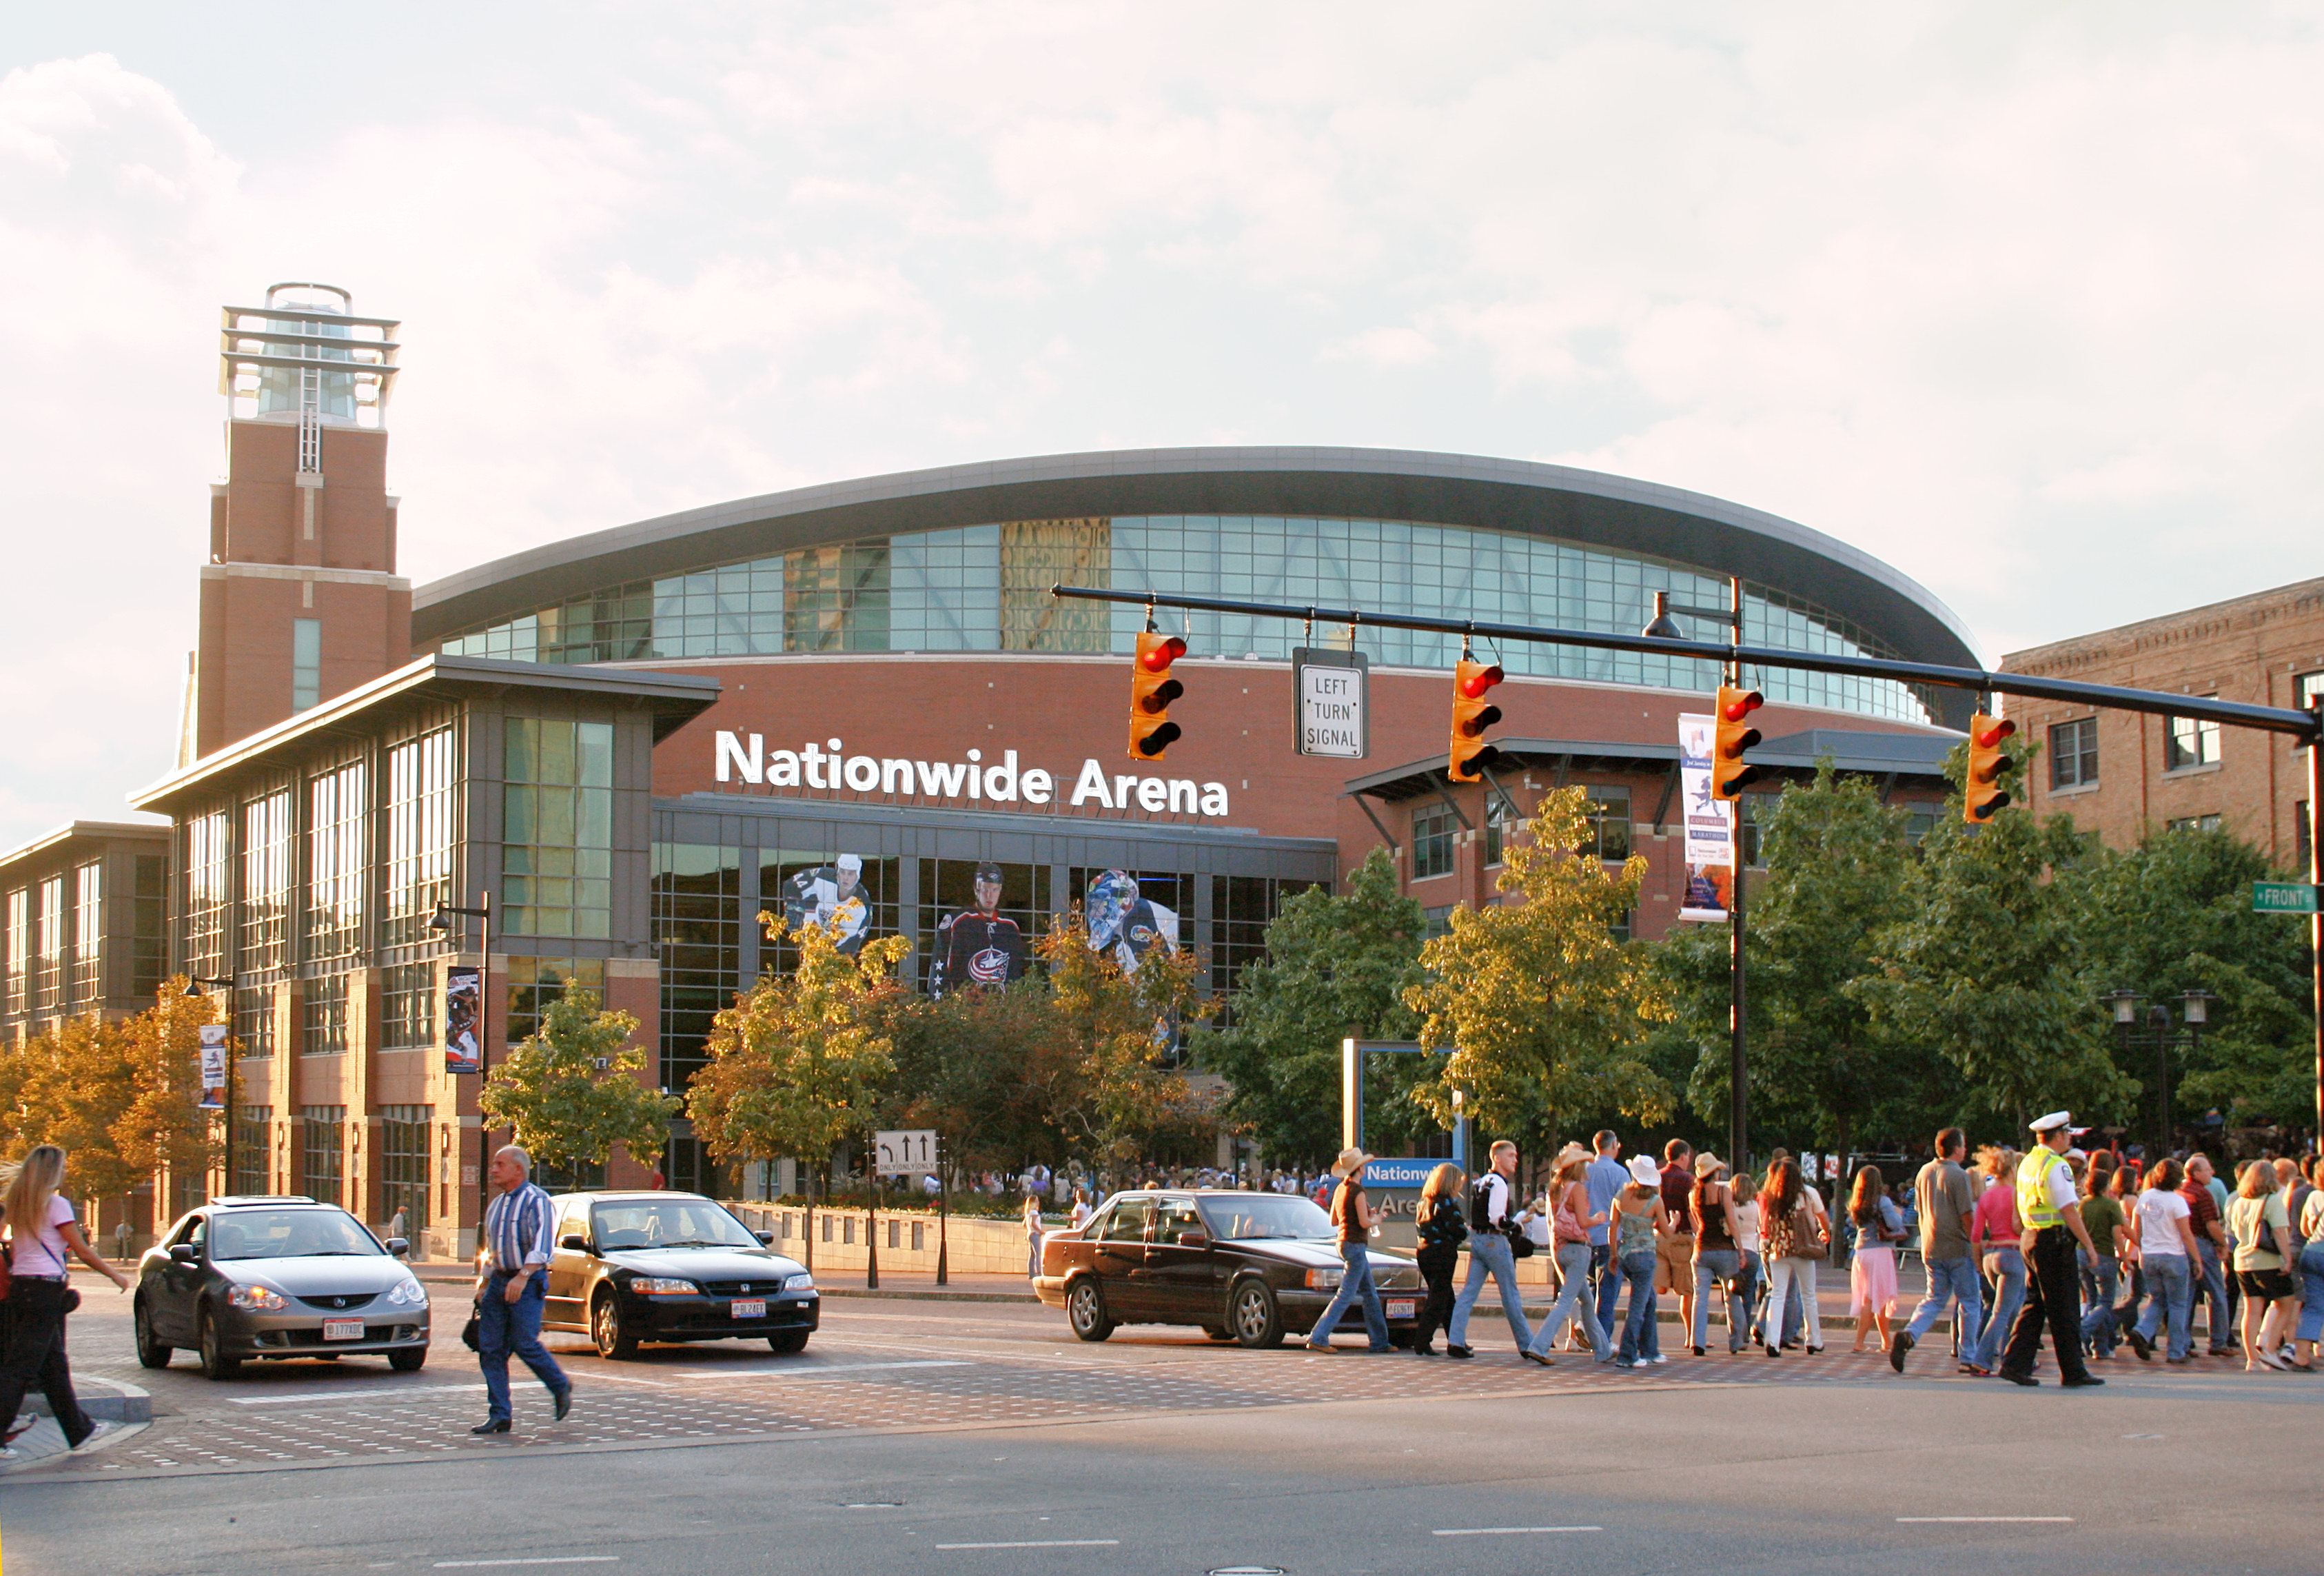 <a href='http://www.ticketsreview.com/venue/nationwide-arena-schedule/'>Nationwide Arena tickets</a>